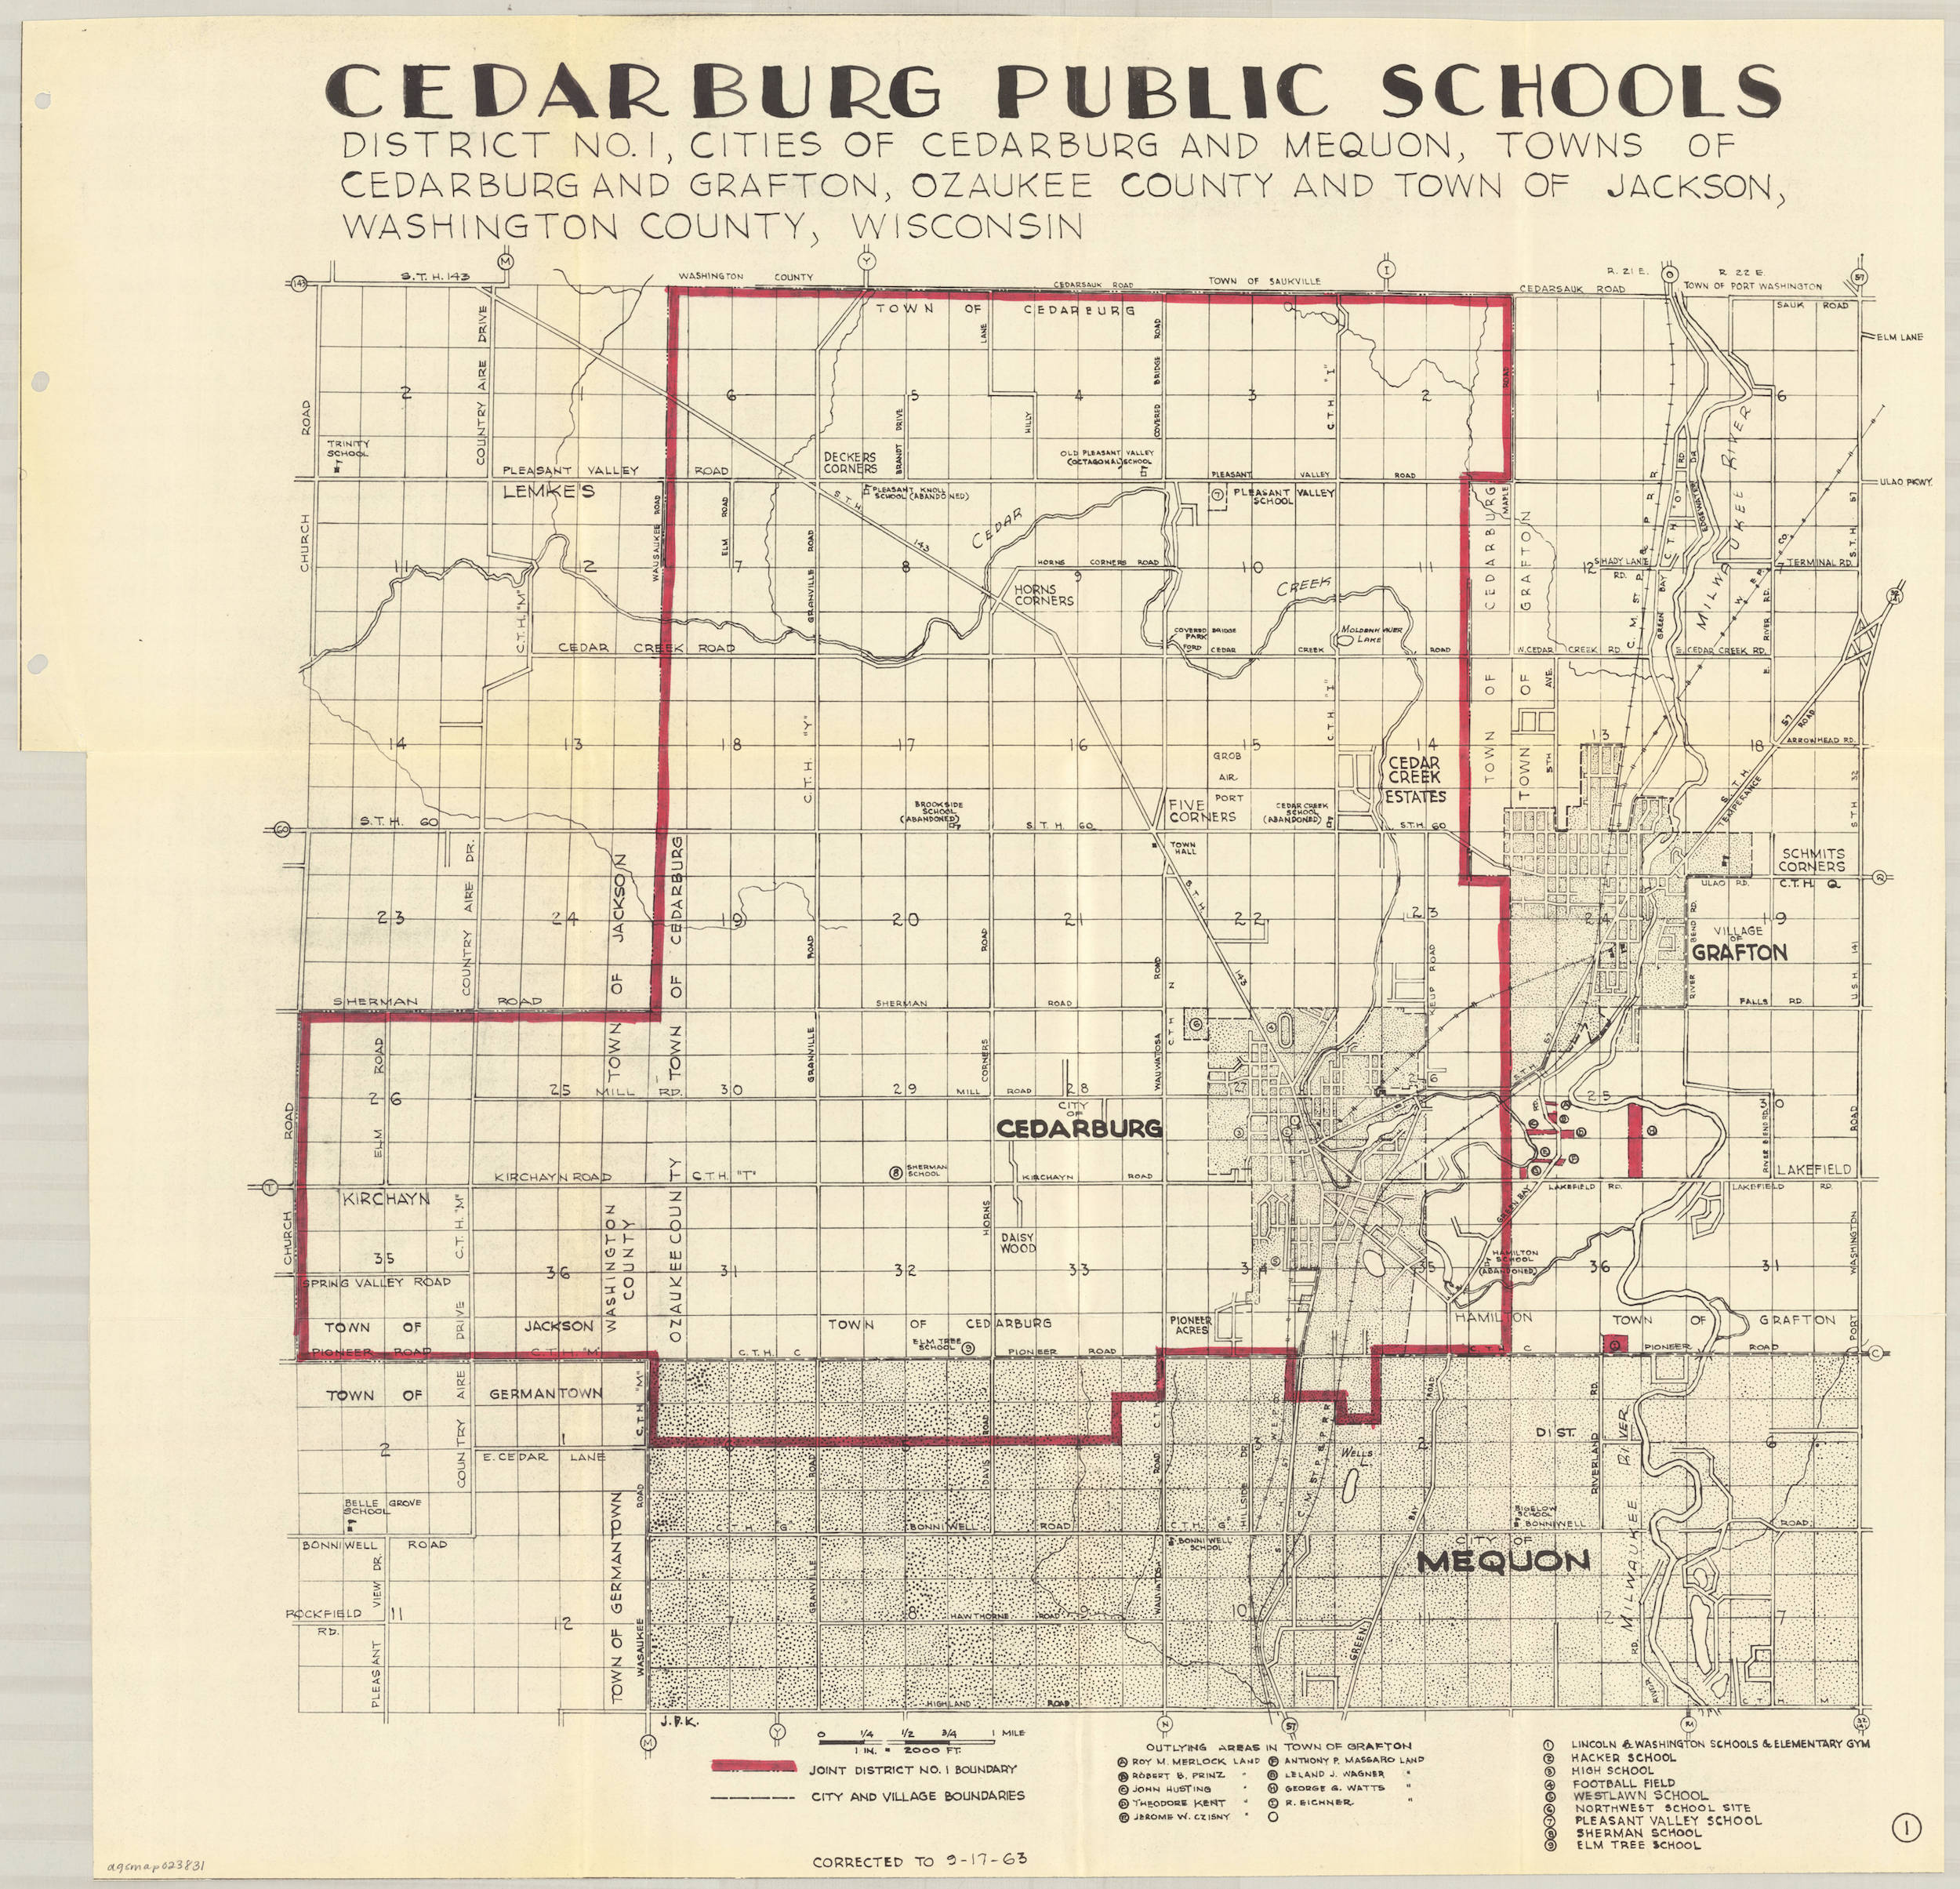 <table class=&quot;lightbox&quot;><tr><td colspan=2 class=&quot;lightbox-title&quot;>Cedarburg Public Schools</td></tr><tr><td colspan=2 class=&quot;lightbox-caption&quot;>This map outlines the boundaries of District No. 1 of Cedarburg Public Schools in 1963. In whole or part, it included the cities of Cedarburg and Mequon, towns of Cedarburg and Grafton, and the town of Jackson.</td></tr><tr><td colspan=2 class=&quot;lightbox-spacer&quot;></td></tr><tr class=&quot;lightbox-detail&quot;><td class=&quot;cell-title&quot;>Source: </td><td class=&quot;cell-value&quot;>From the American Geographical Society Library Digital Map Collection. University of Wisconsin-Milwaukee Libraries.<br /><a href=&quot;https://collections.lib.uwm.edu/digital/collection/agdm/id/13840/rec/1&quot; target=&quot;_blank&quot;>University of Wisconsin-Milwaukee Libraries</a></td></tr><tr class=&quot;filler-row&quot;><td colspan=2>&nbsp;</td></tr></table>